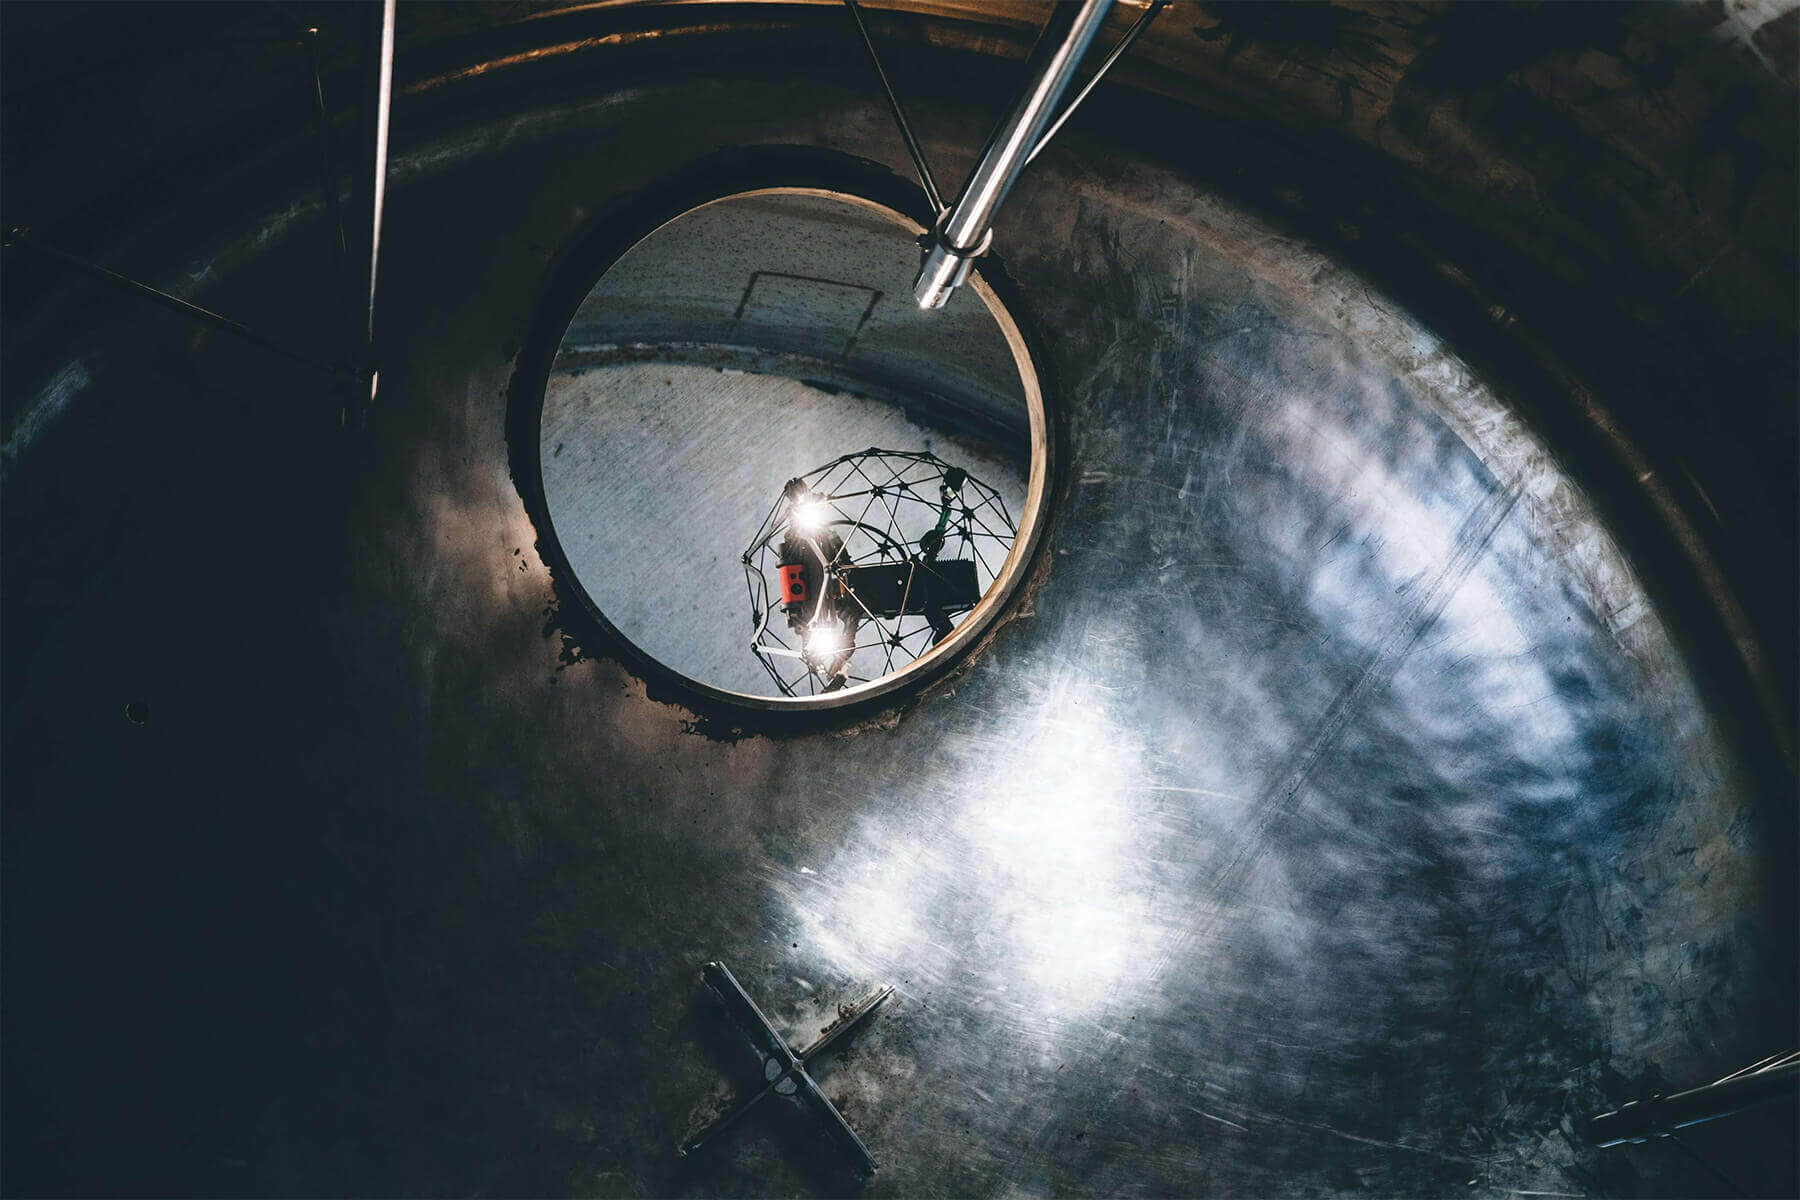 Confined Space Drone Inspections: Benefits of Using UAVs